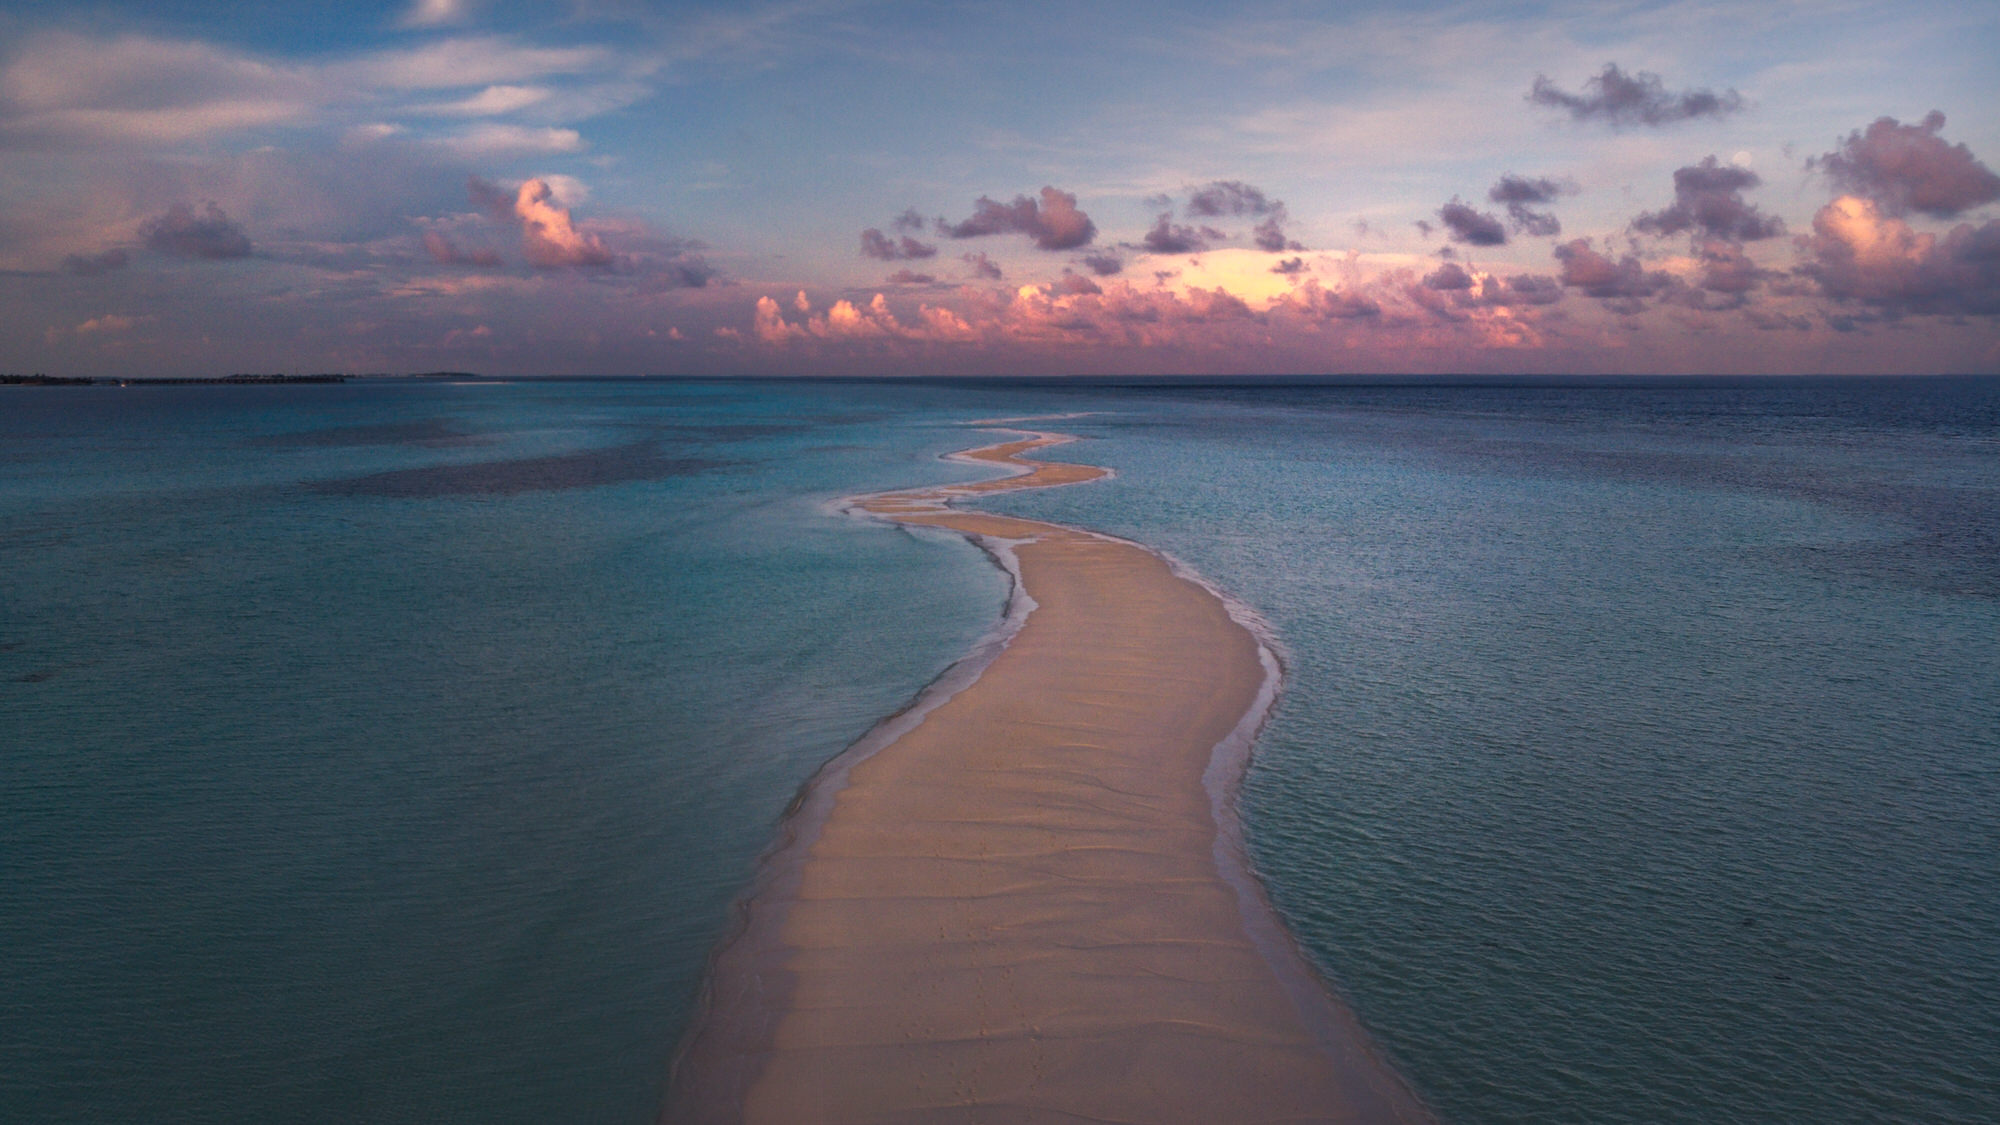 Maldives - Long Beach at Sunrise - wide drone view